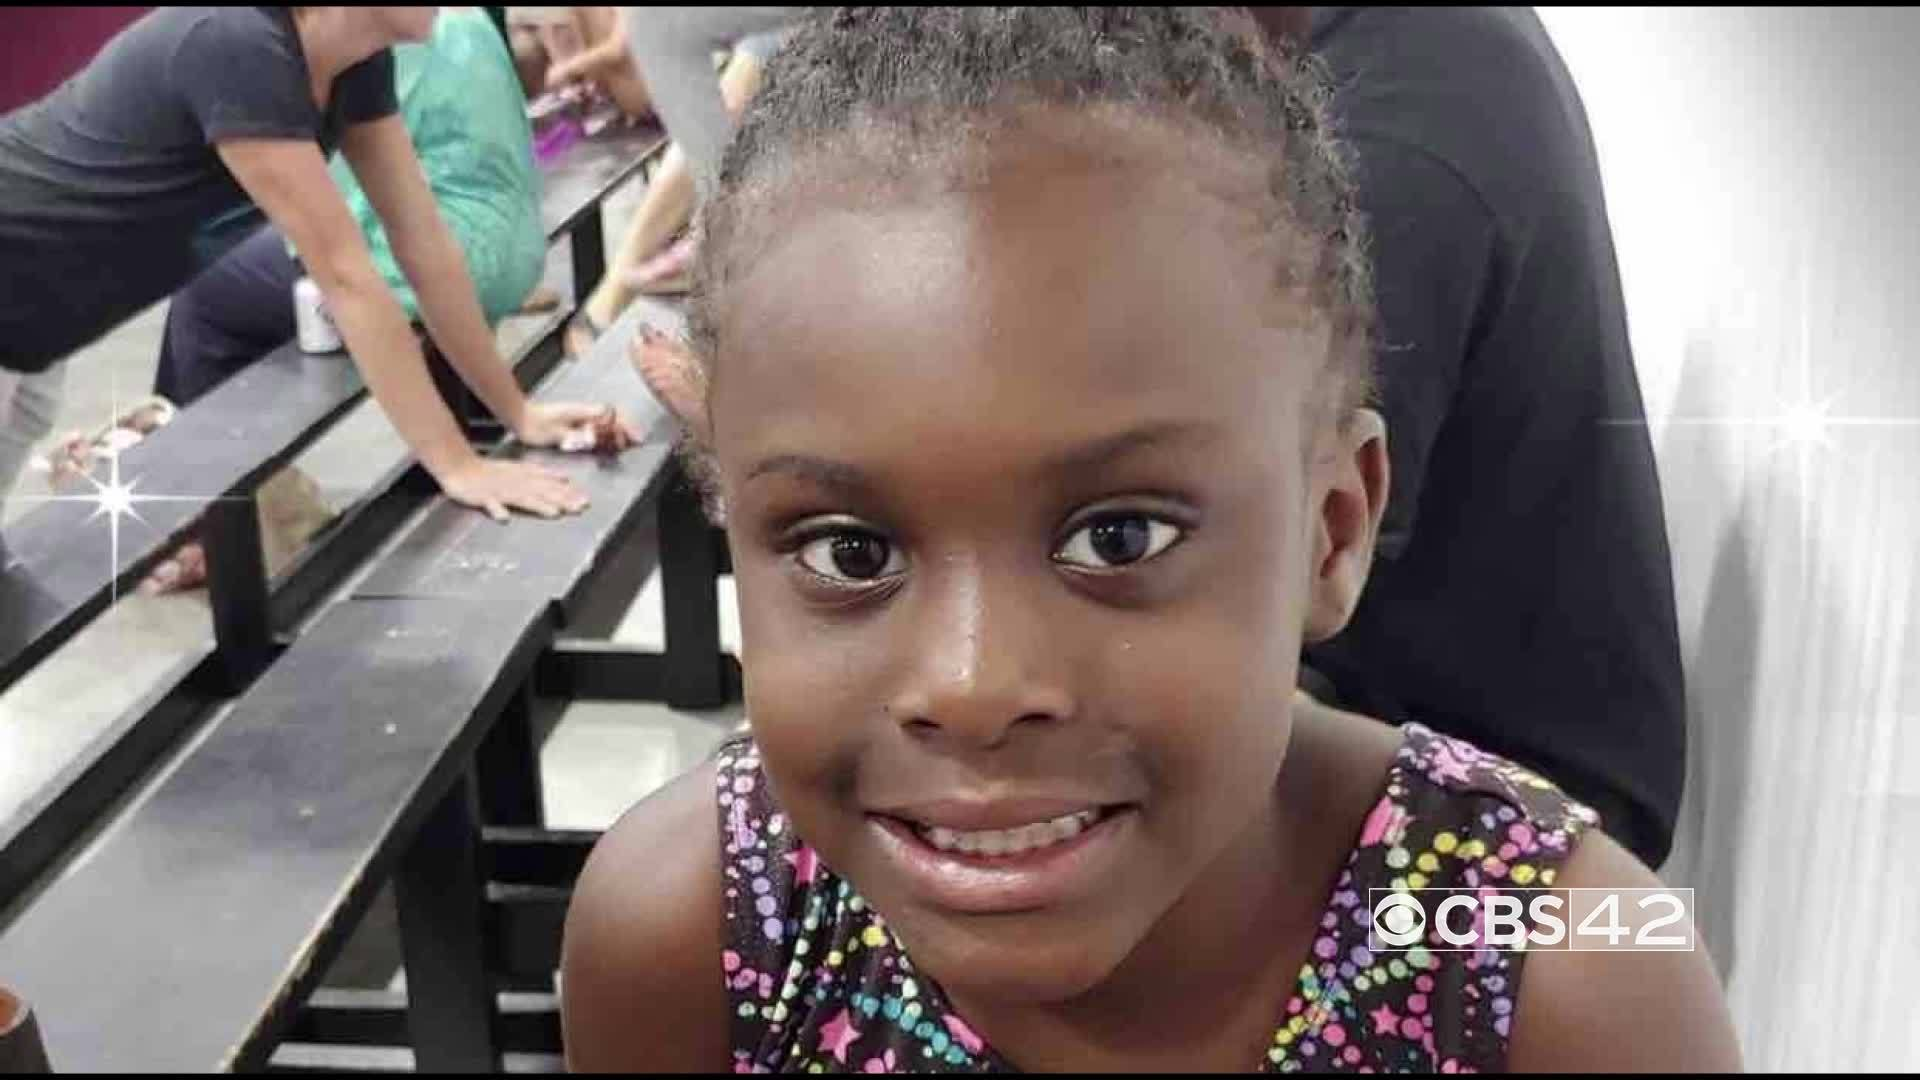 """""""I'M A SURVIVOR"""": A 1st grader at McAdory Elementary School keeps her head high while battling cancer"""